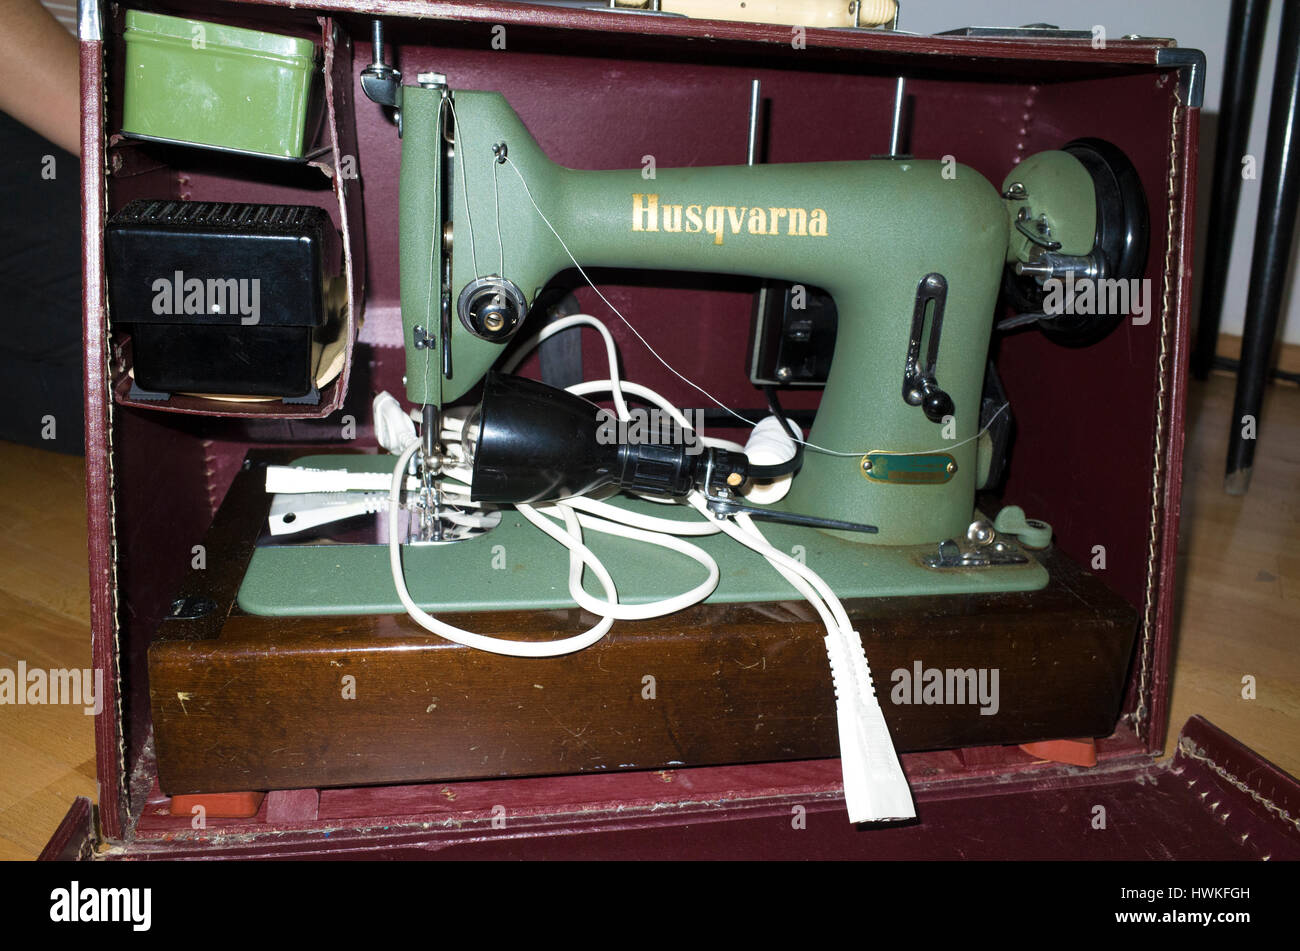 Old, but working Husqvarna sewing machine in the home. Zawady Central Poland Europe - Stock Image